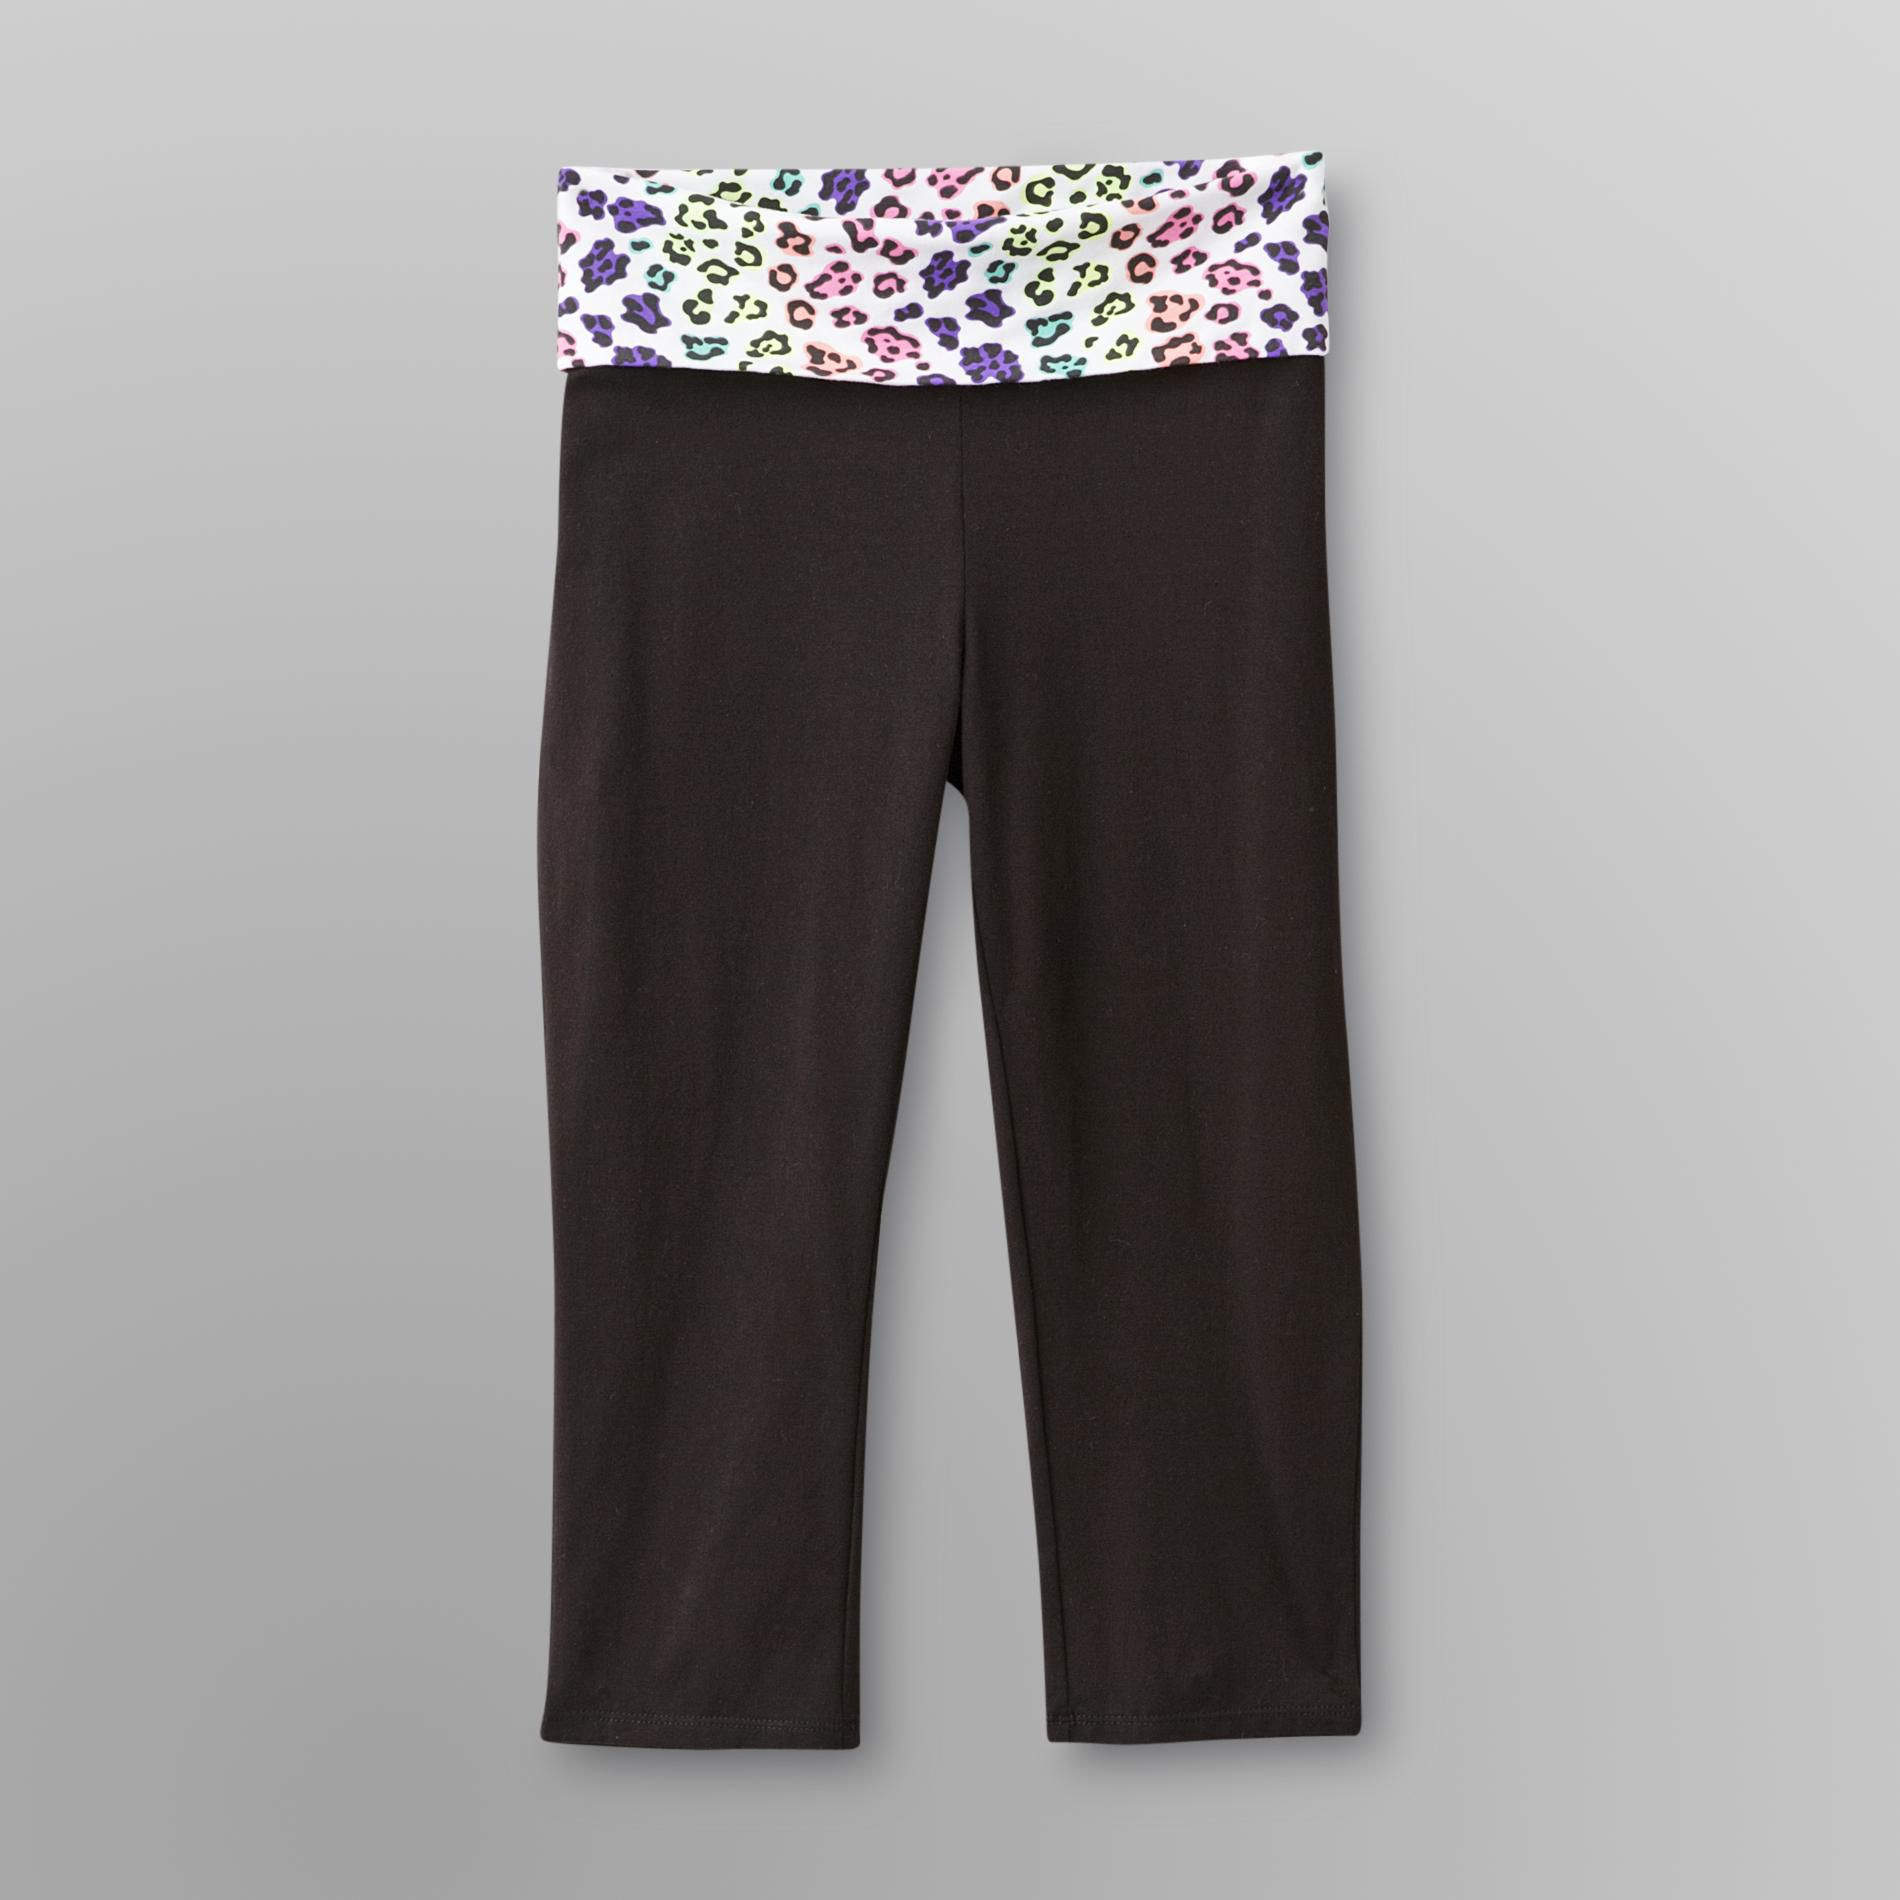 Joe Boxer Women's Yoga Capri Pants - Cheetah at Sears.com